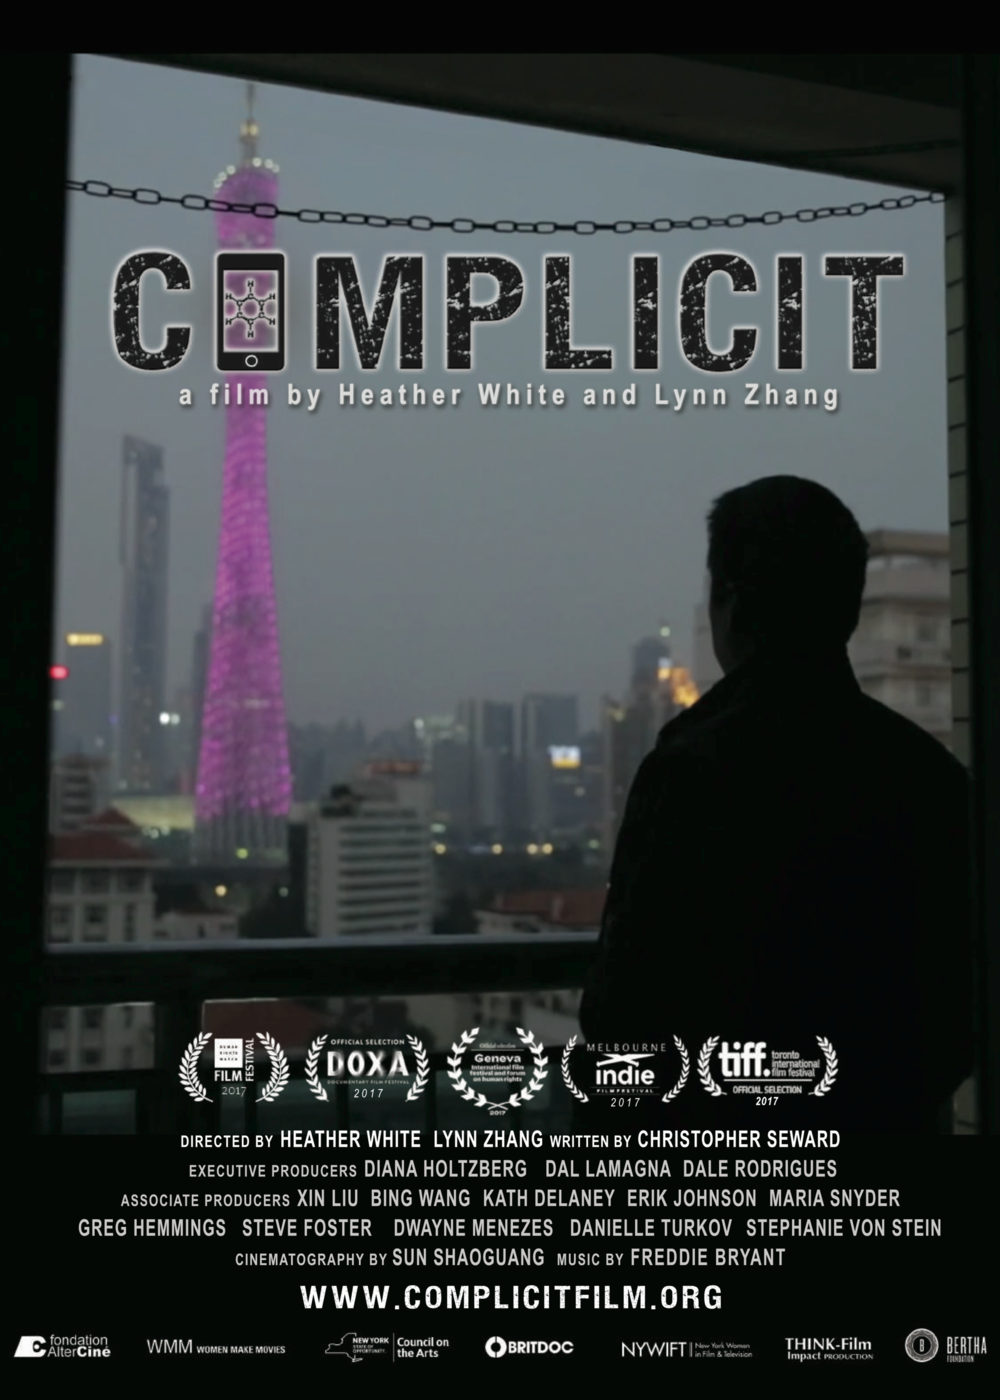 COMPLICIT - 2017, USA/China, 88 min, in Mandarin & English.The intimate journey of Chinese migrant worker Yi Yeting, a benzene-poisoned victim-turned-activist who takes on the global electronics manufacturing industry. Complicit reveals the true human cost of the devices we can't live without.